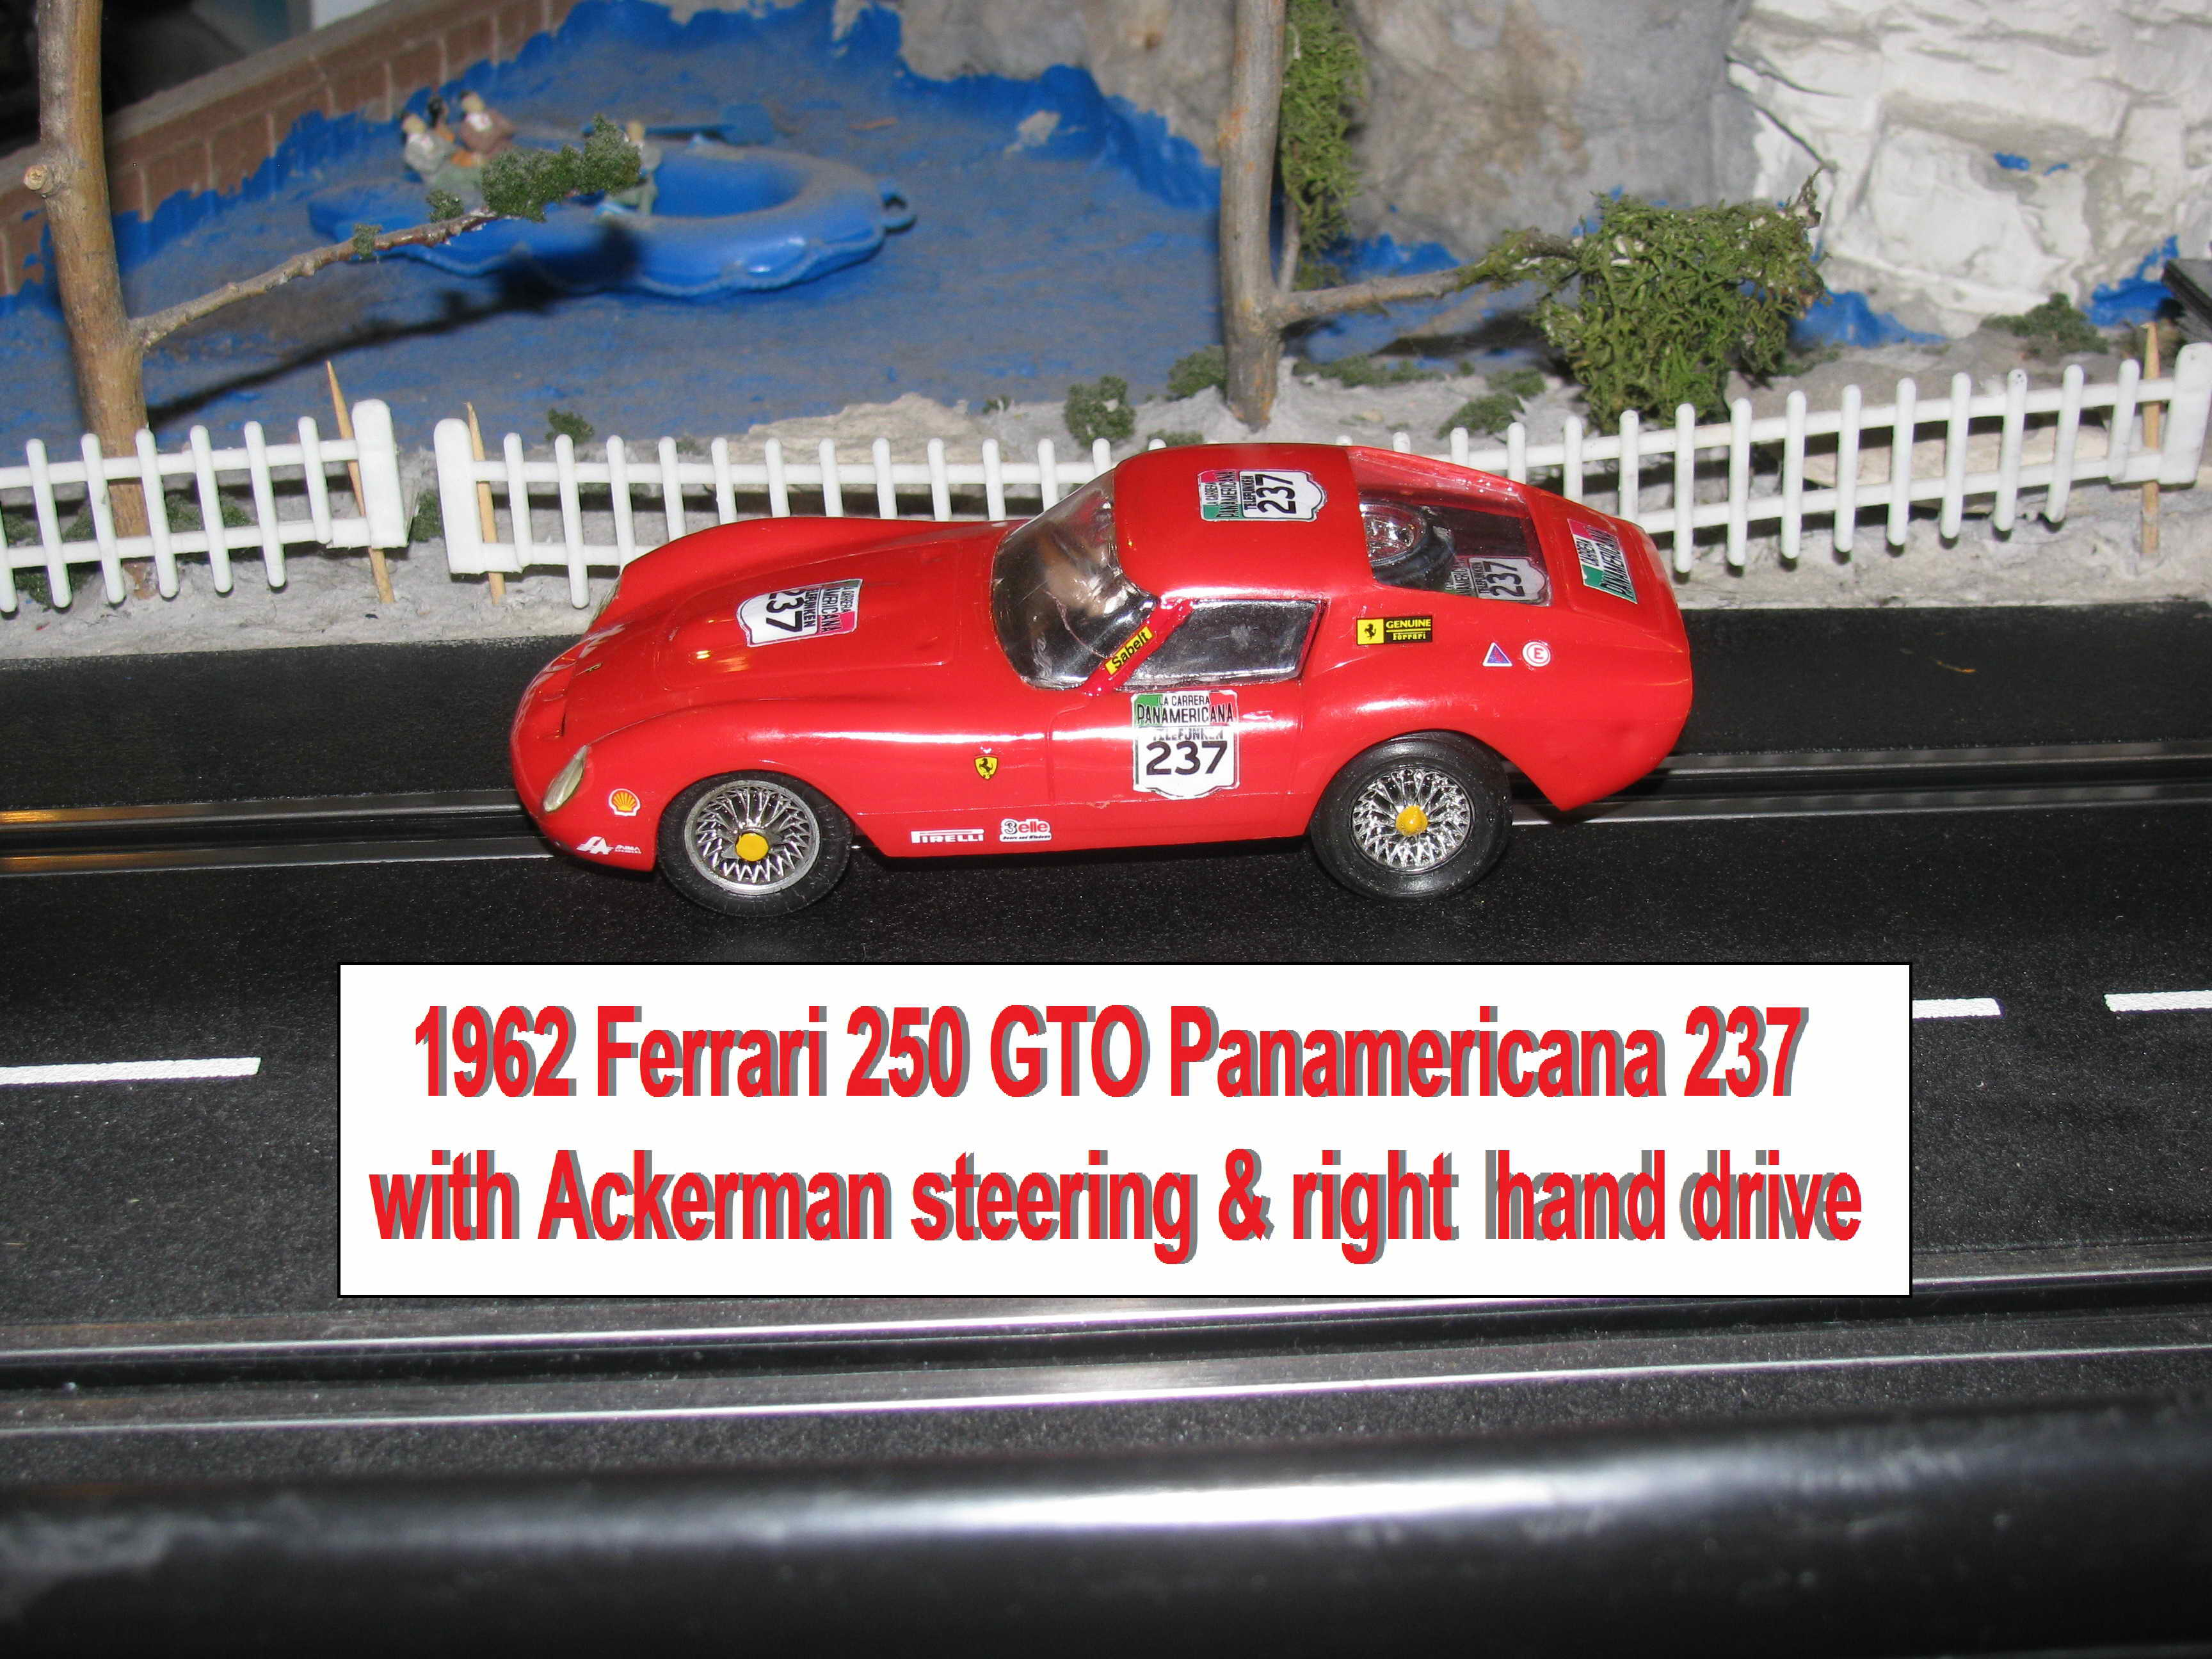 *SOLD* 1962 Ferrari 250 GTO Panamericana 237 with Ackerman Steering 1:32 Scale Slot Car